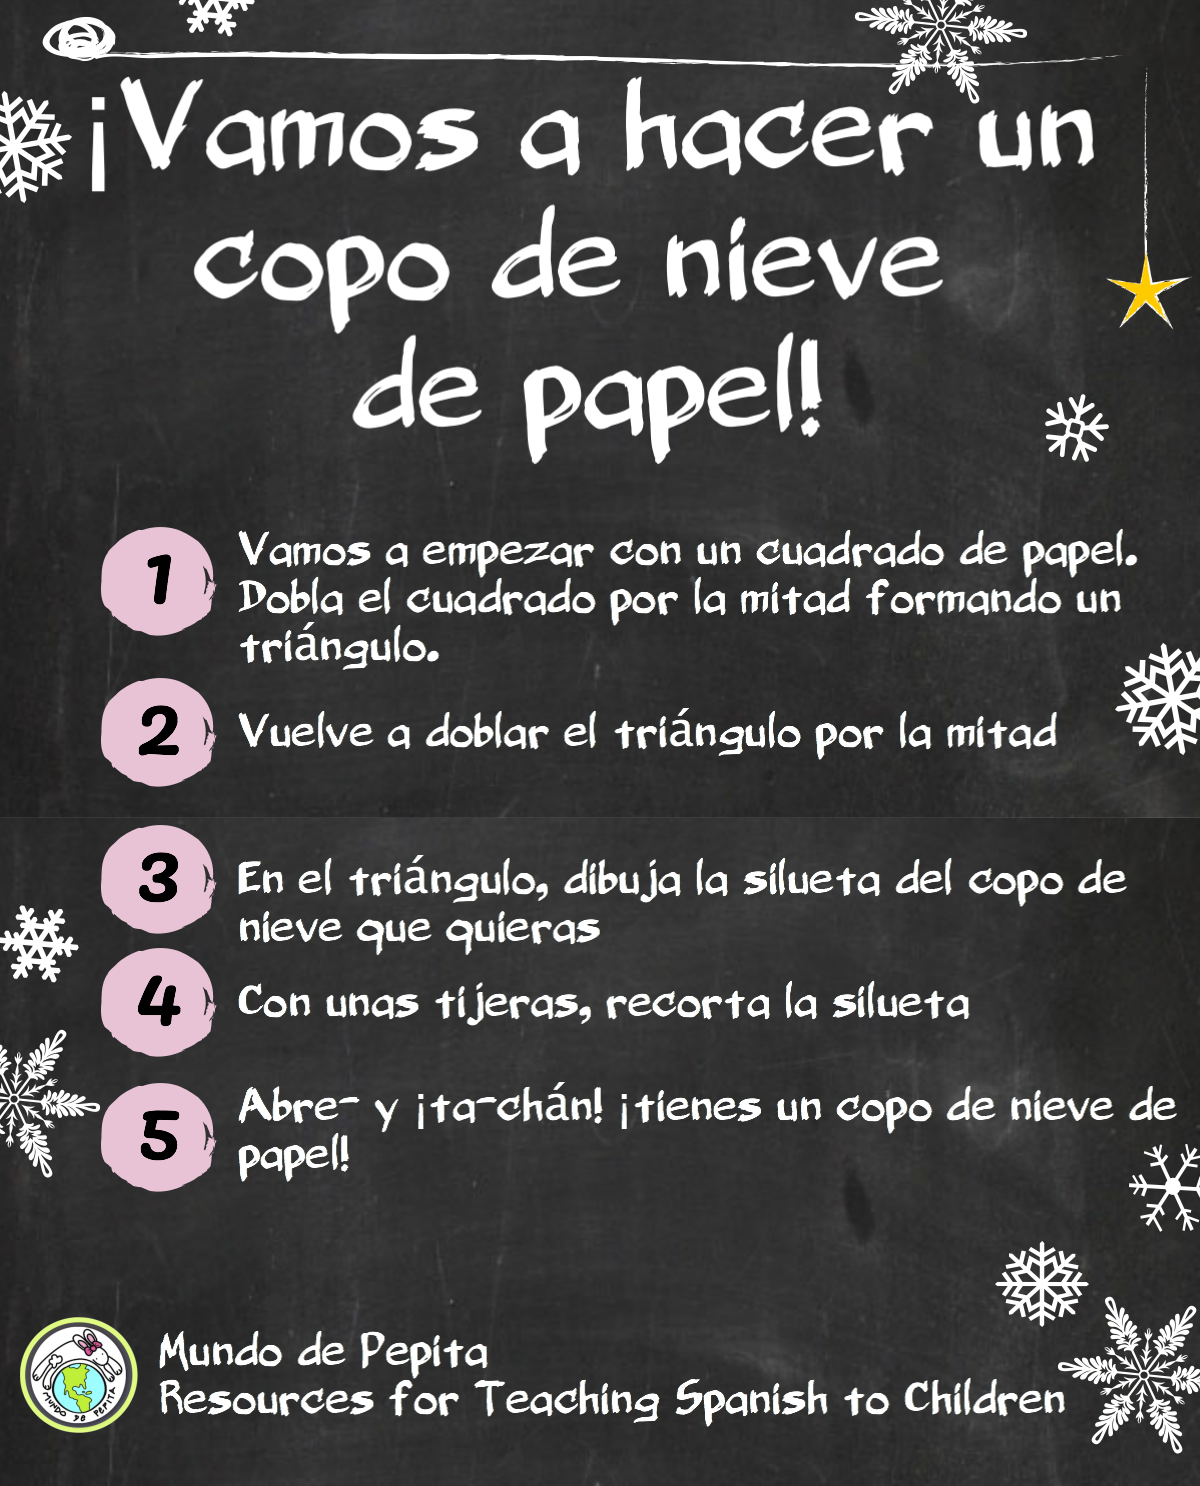 How To Make A Paper Snowflake In Spanish Class In The